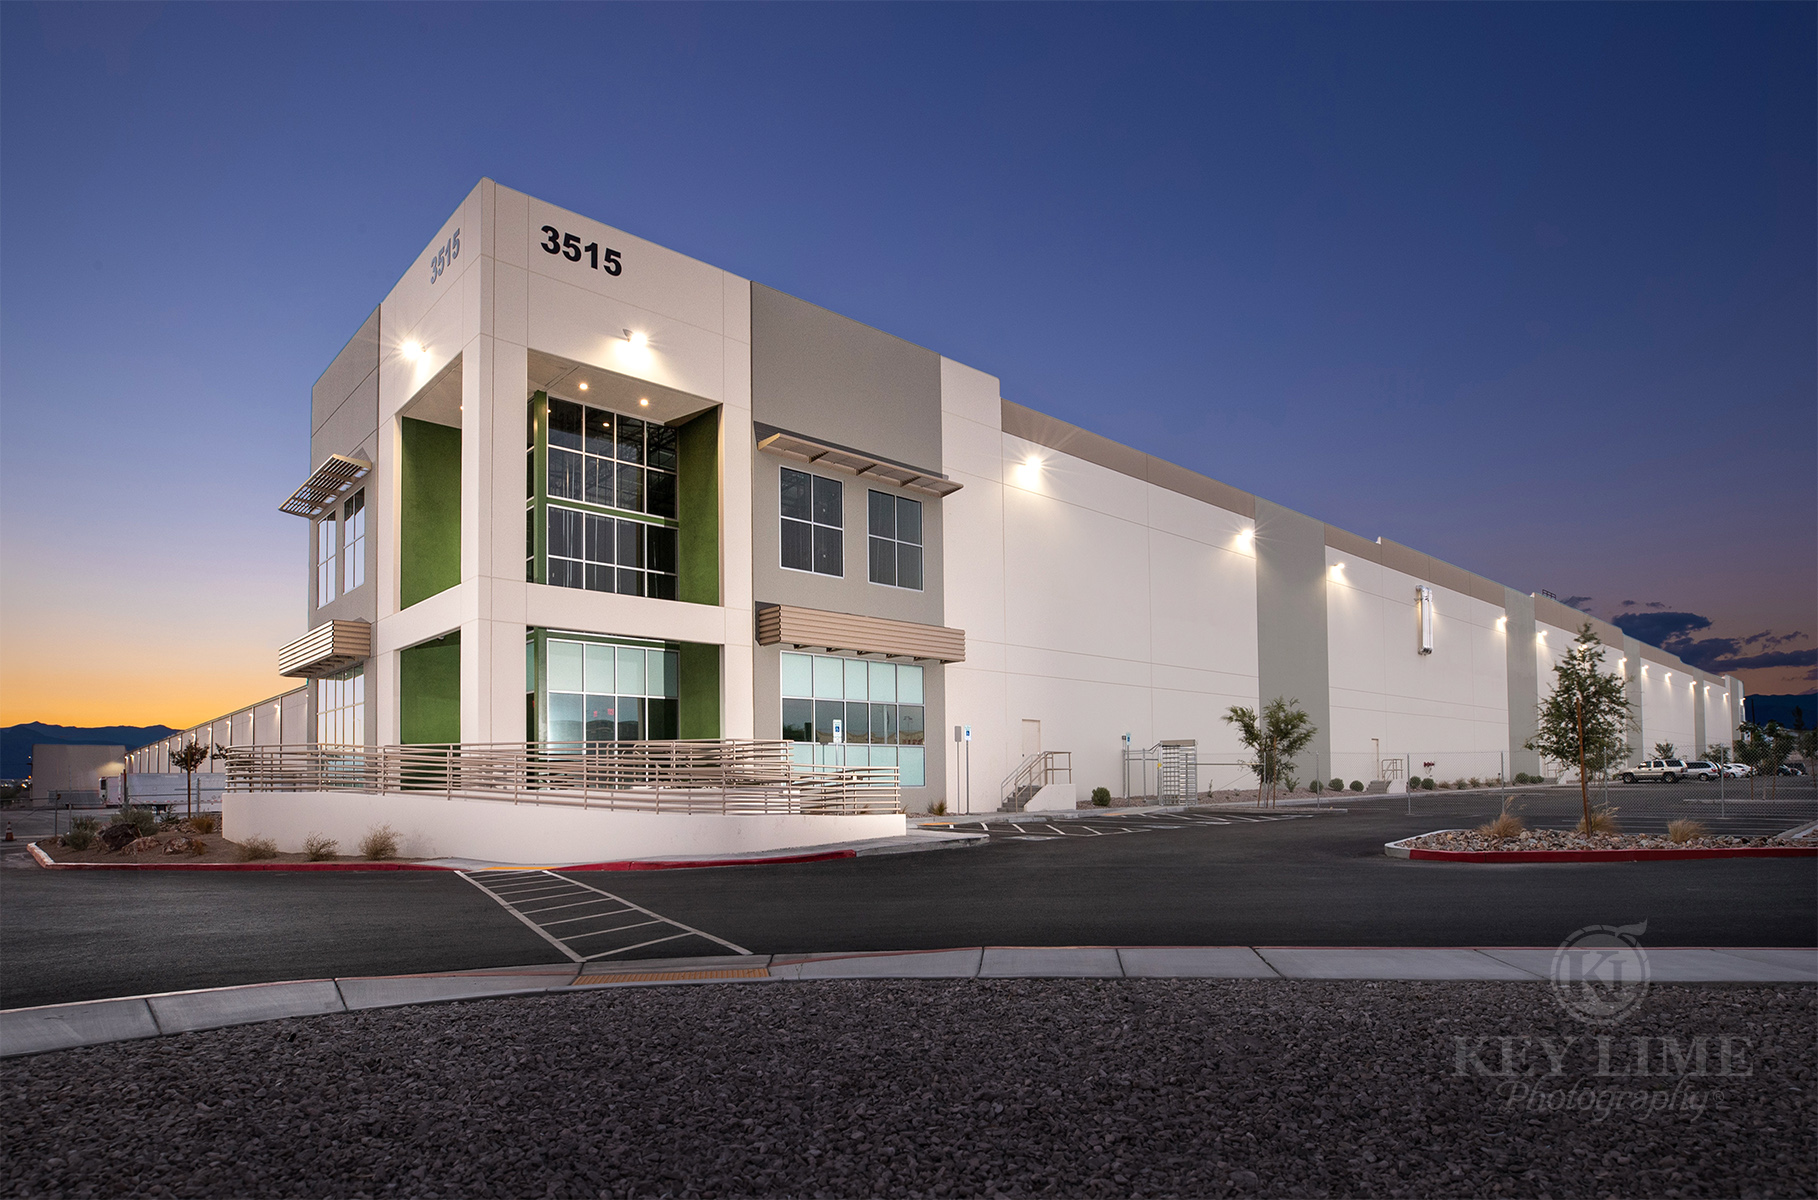 Commercial architecture photographer image of white and green warehouse against a blue twilight sky..